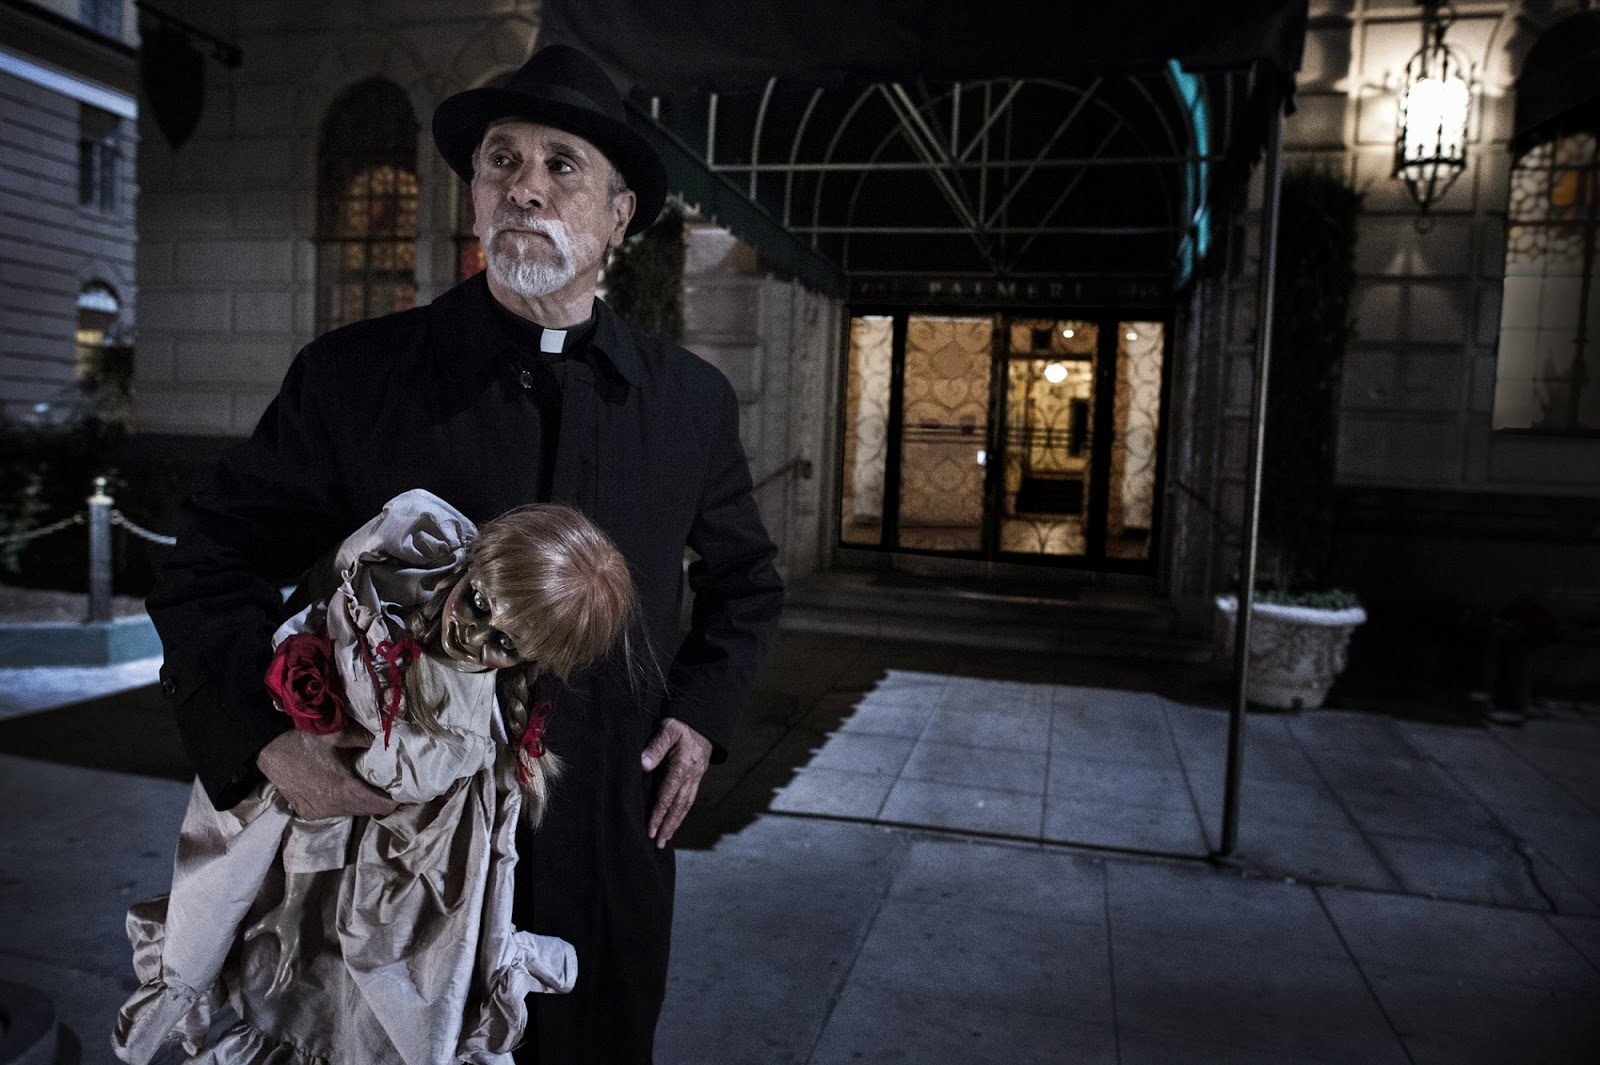 Annabelle movie review, Conjures Up a Devil Doll